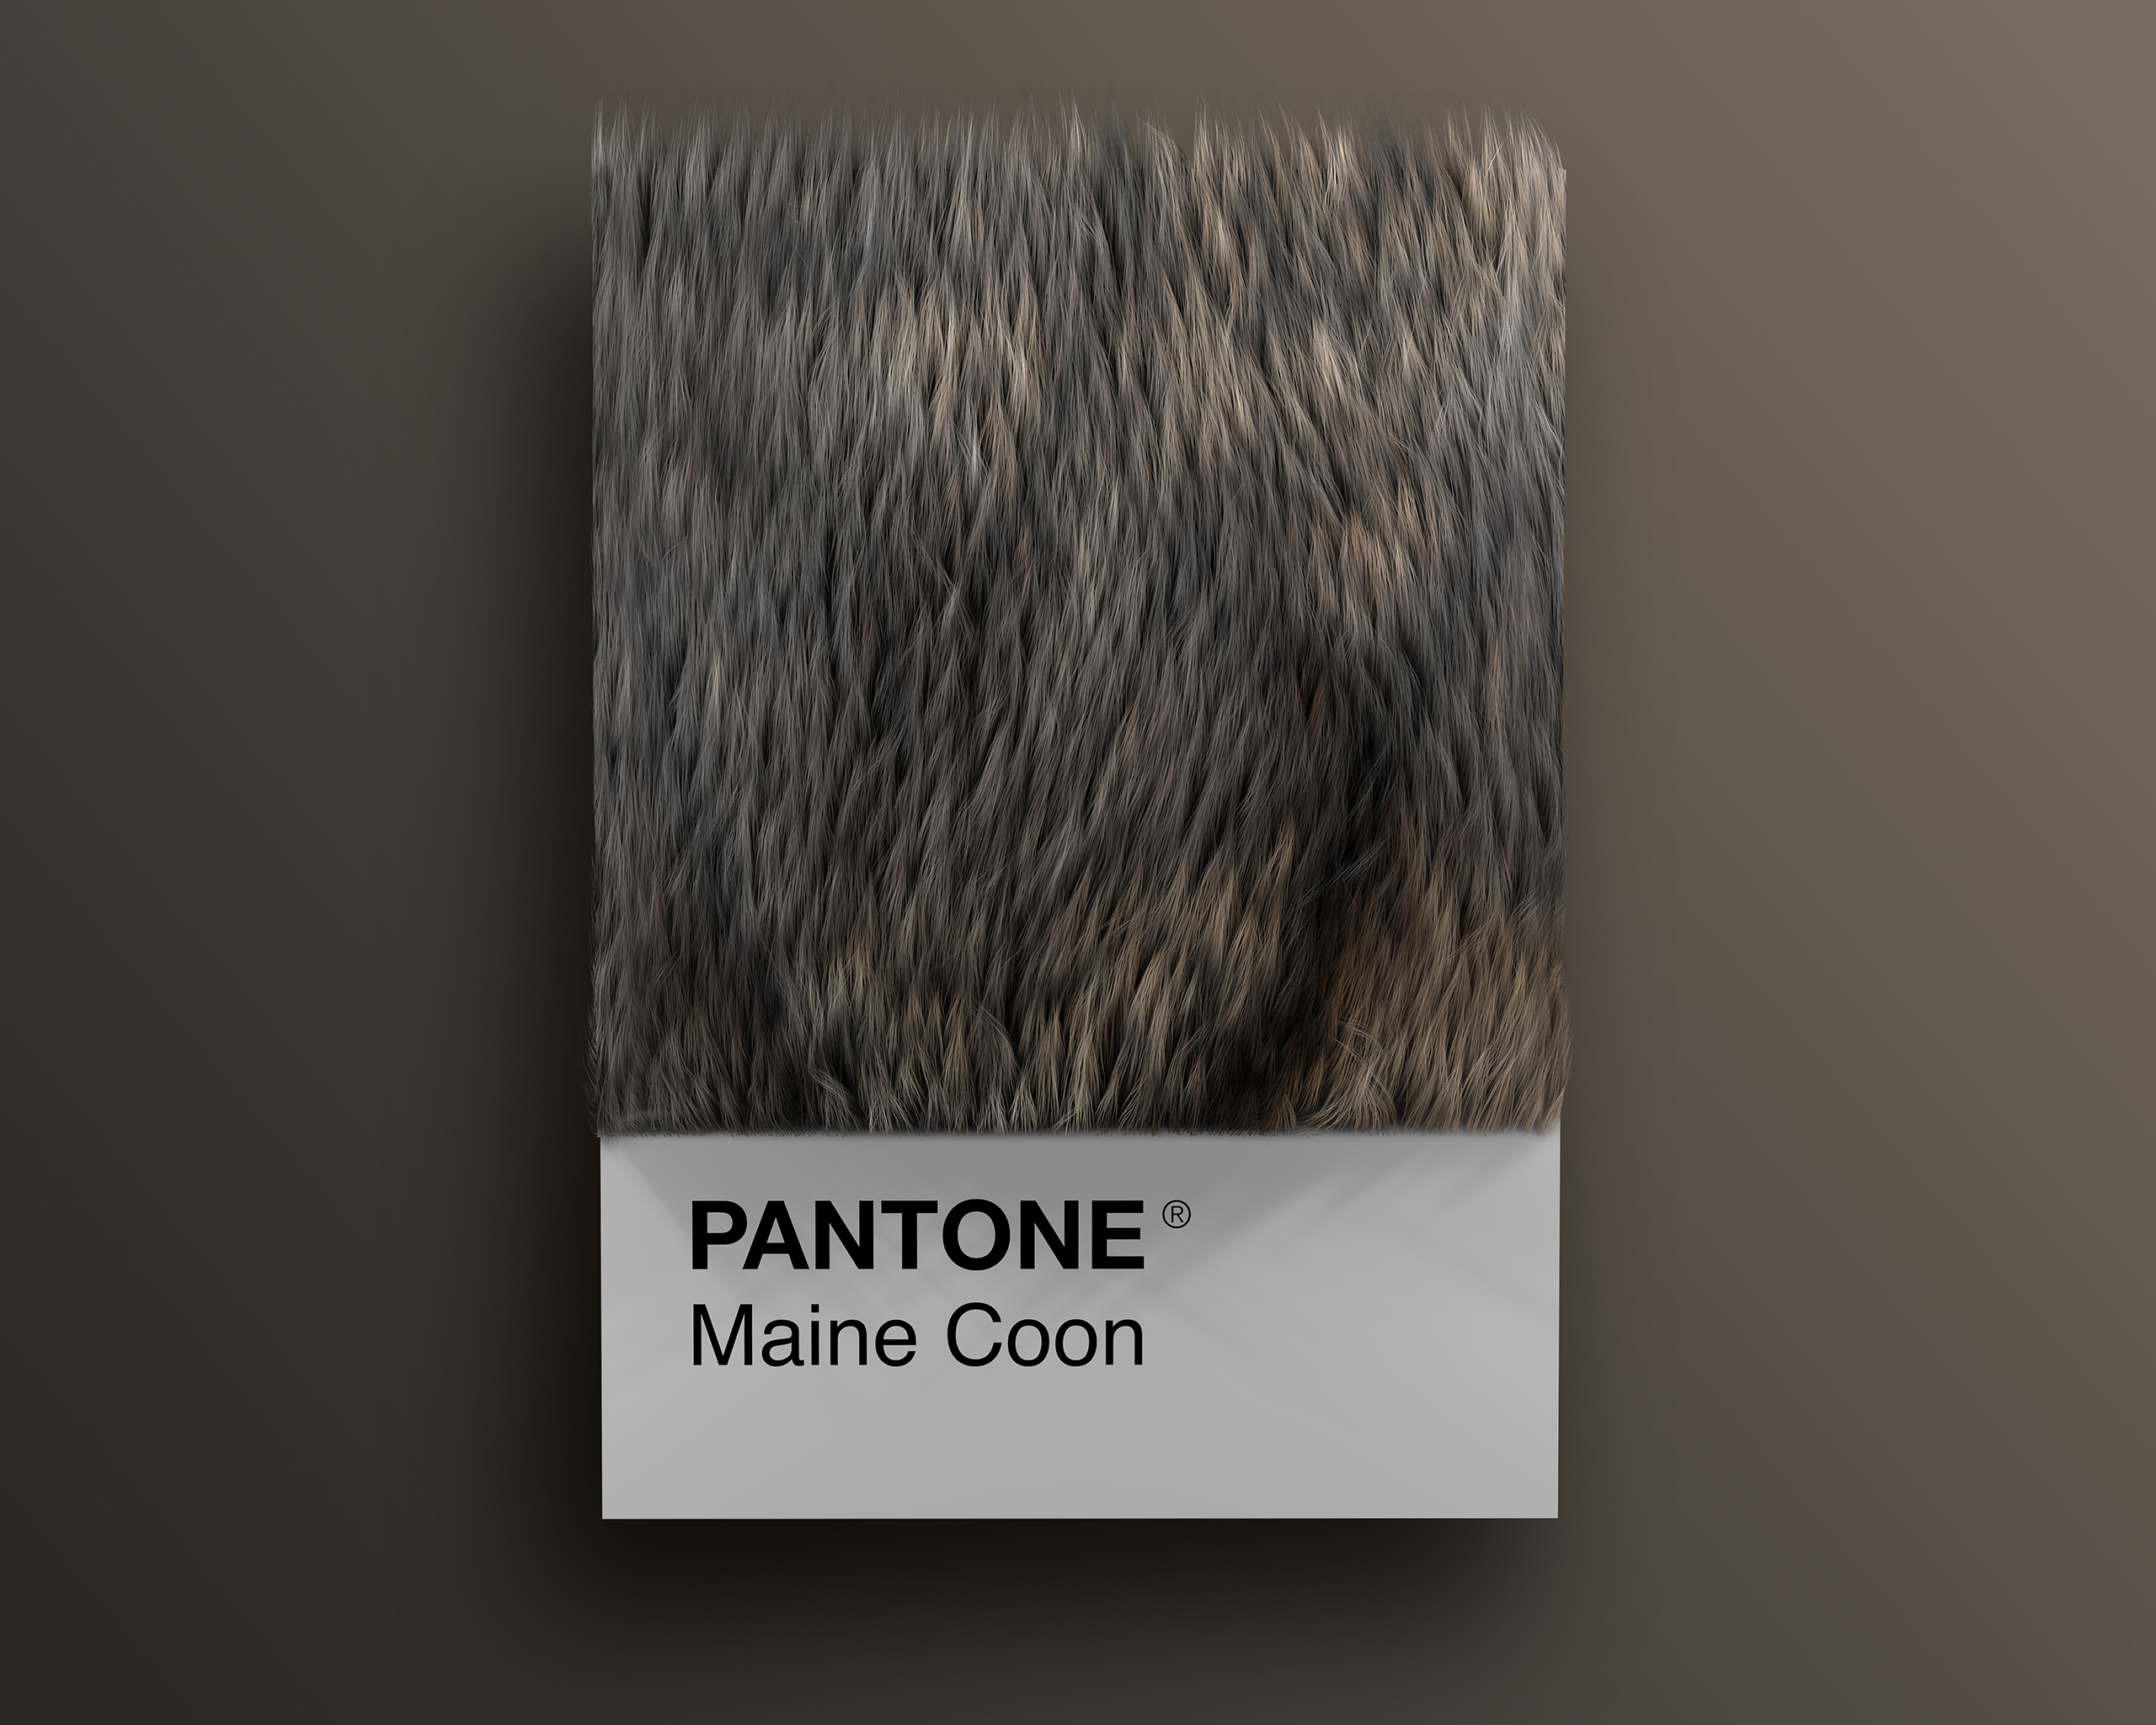 Maine_Coon as Pantone